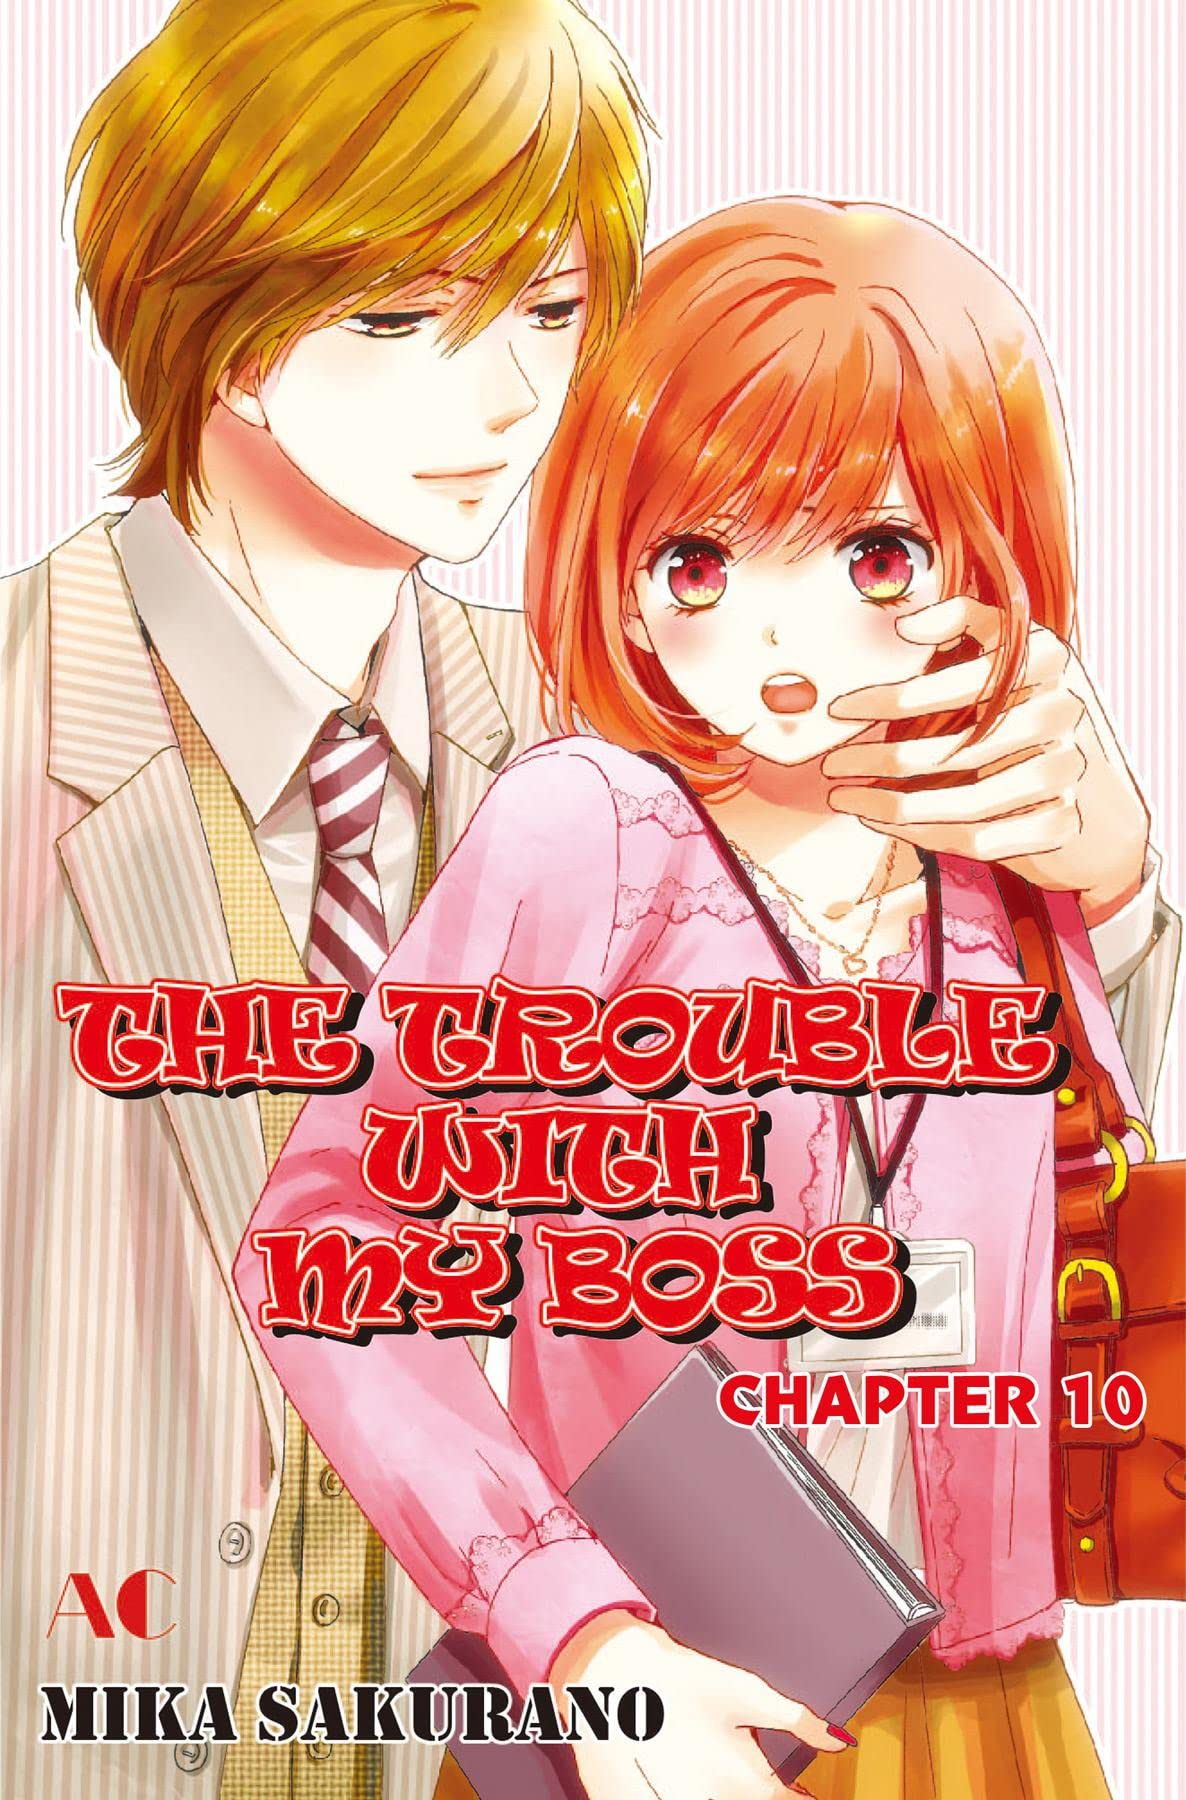 THE TROUBLE WITH MY BOSS #10